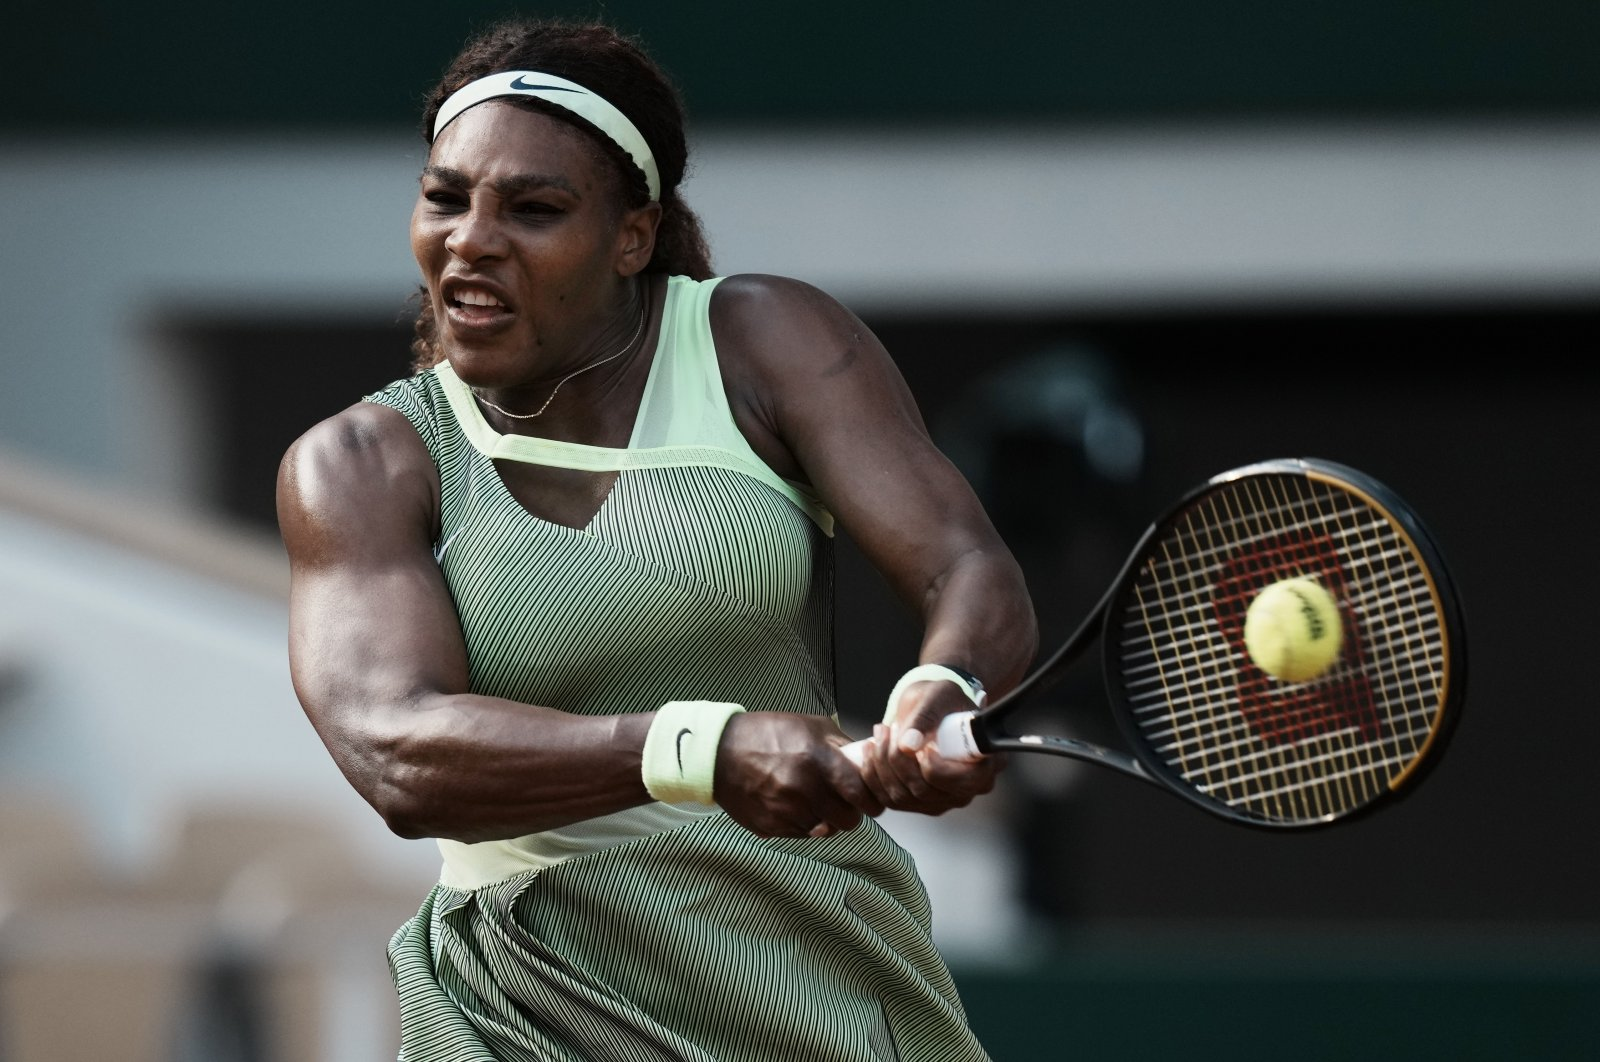 Serena Williams plays a return to Kazakhstan's Elena Rybakina during their fourth-round match on day 8 of the French Open tennis tournament at Roland Garros in Paris, France, June 6, 2021. (AP Photo)